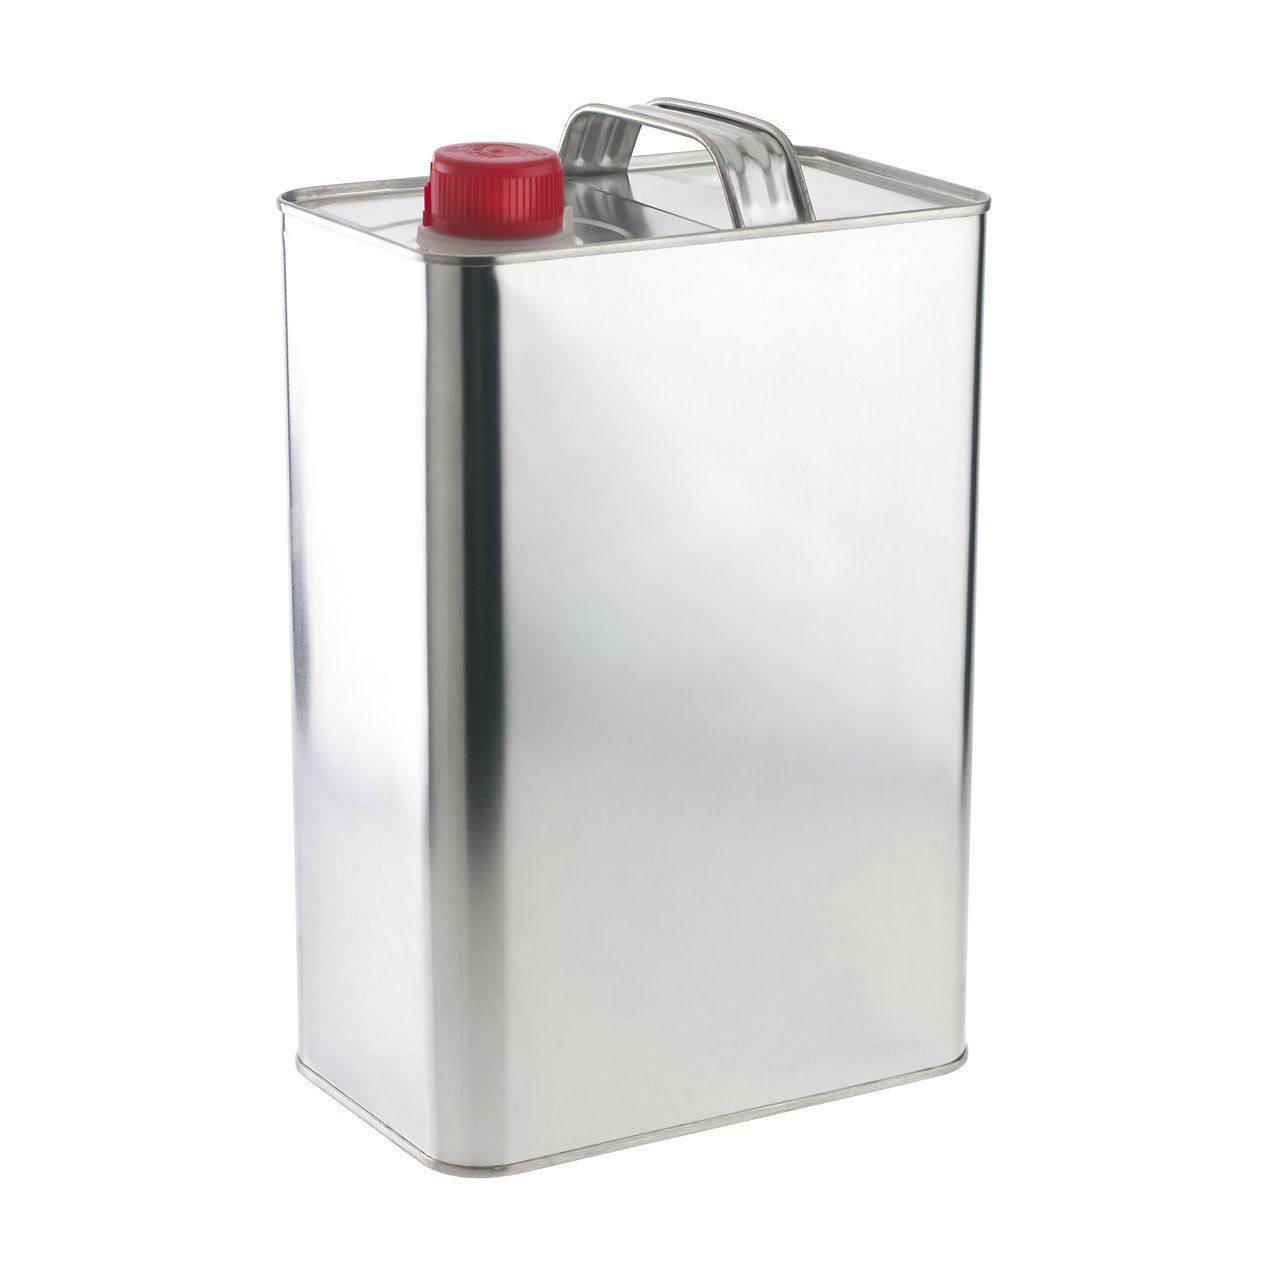 Tin-plated Rectangular Steel Metal Can Jug with Plastic REL Cap , F-Style, (1 Gal Capacity)